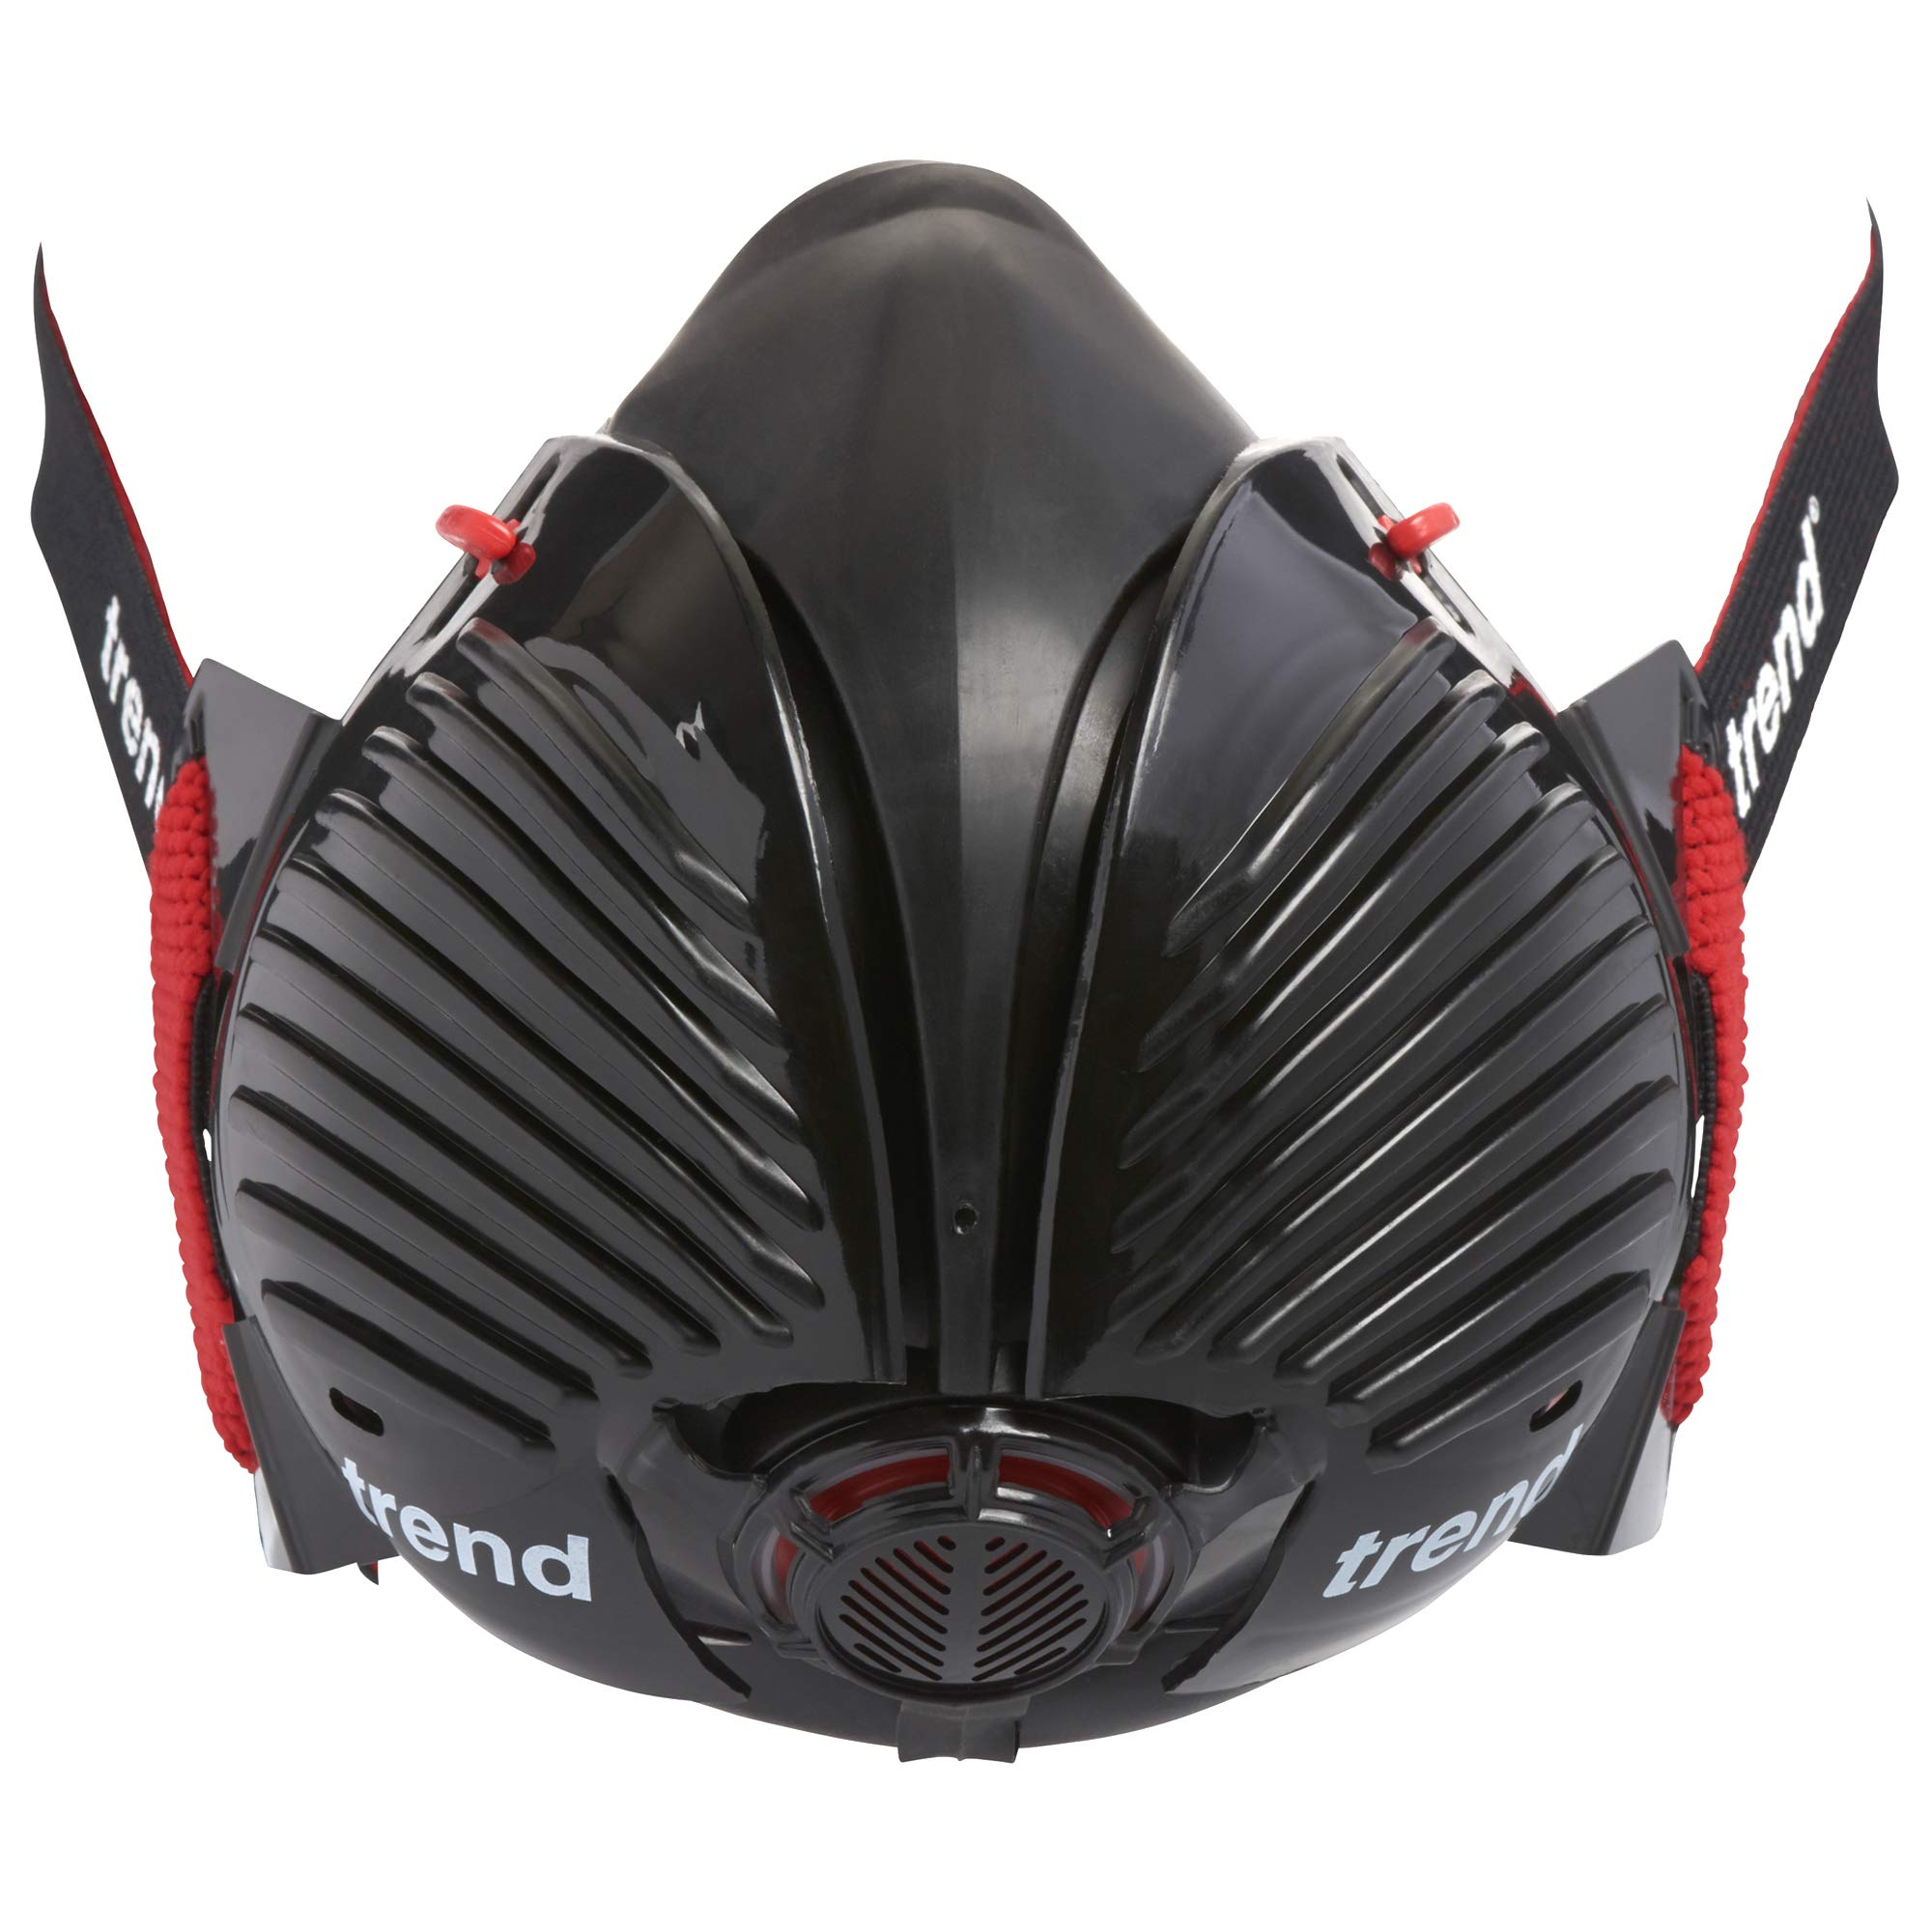 Trend STEALTH/SM Air Half Mask Small/Medium APF20 by Trend (Image #3)